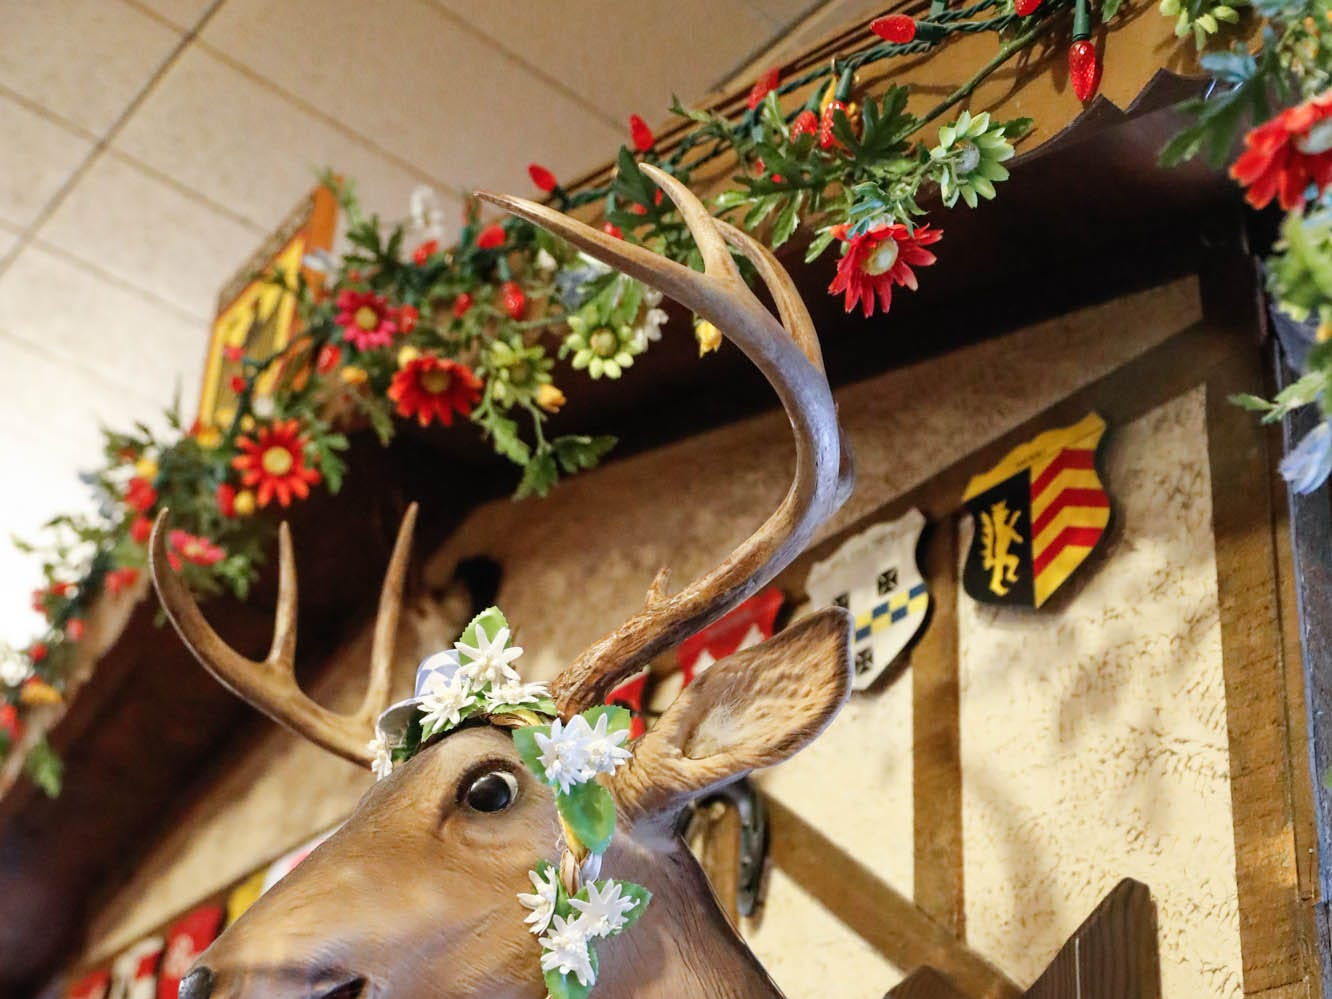 A foe deer head hangs on the wall at Heidelberg Haus Cafe and Bakery, 7625 Pendleton Pike, Indianapolis Ind., on Saturday, Dec. 8th, 2018. The cafe, bakery, and German grocery is well known for its extensive collection of German Kitsch.